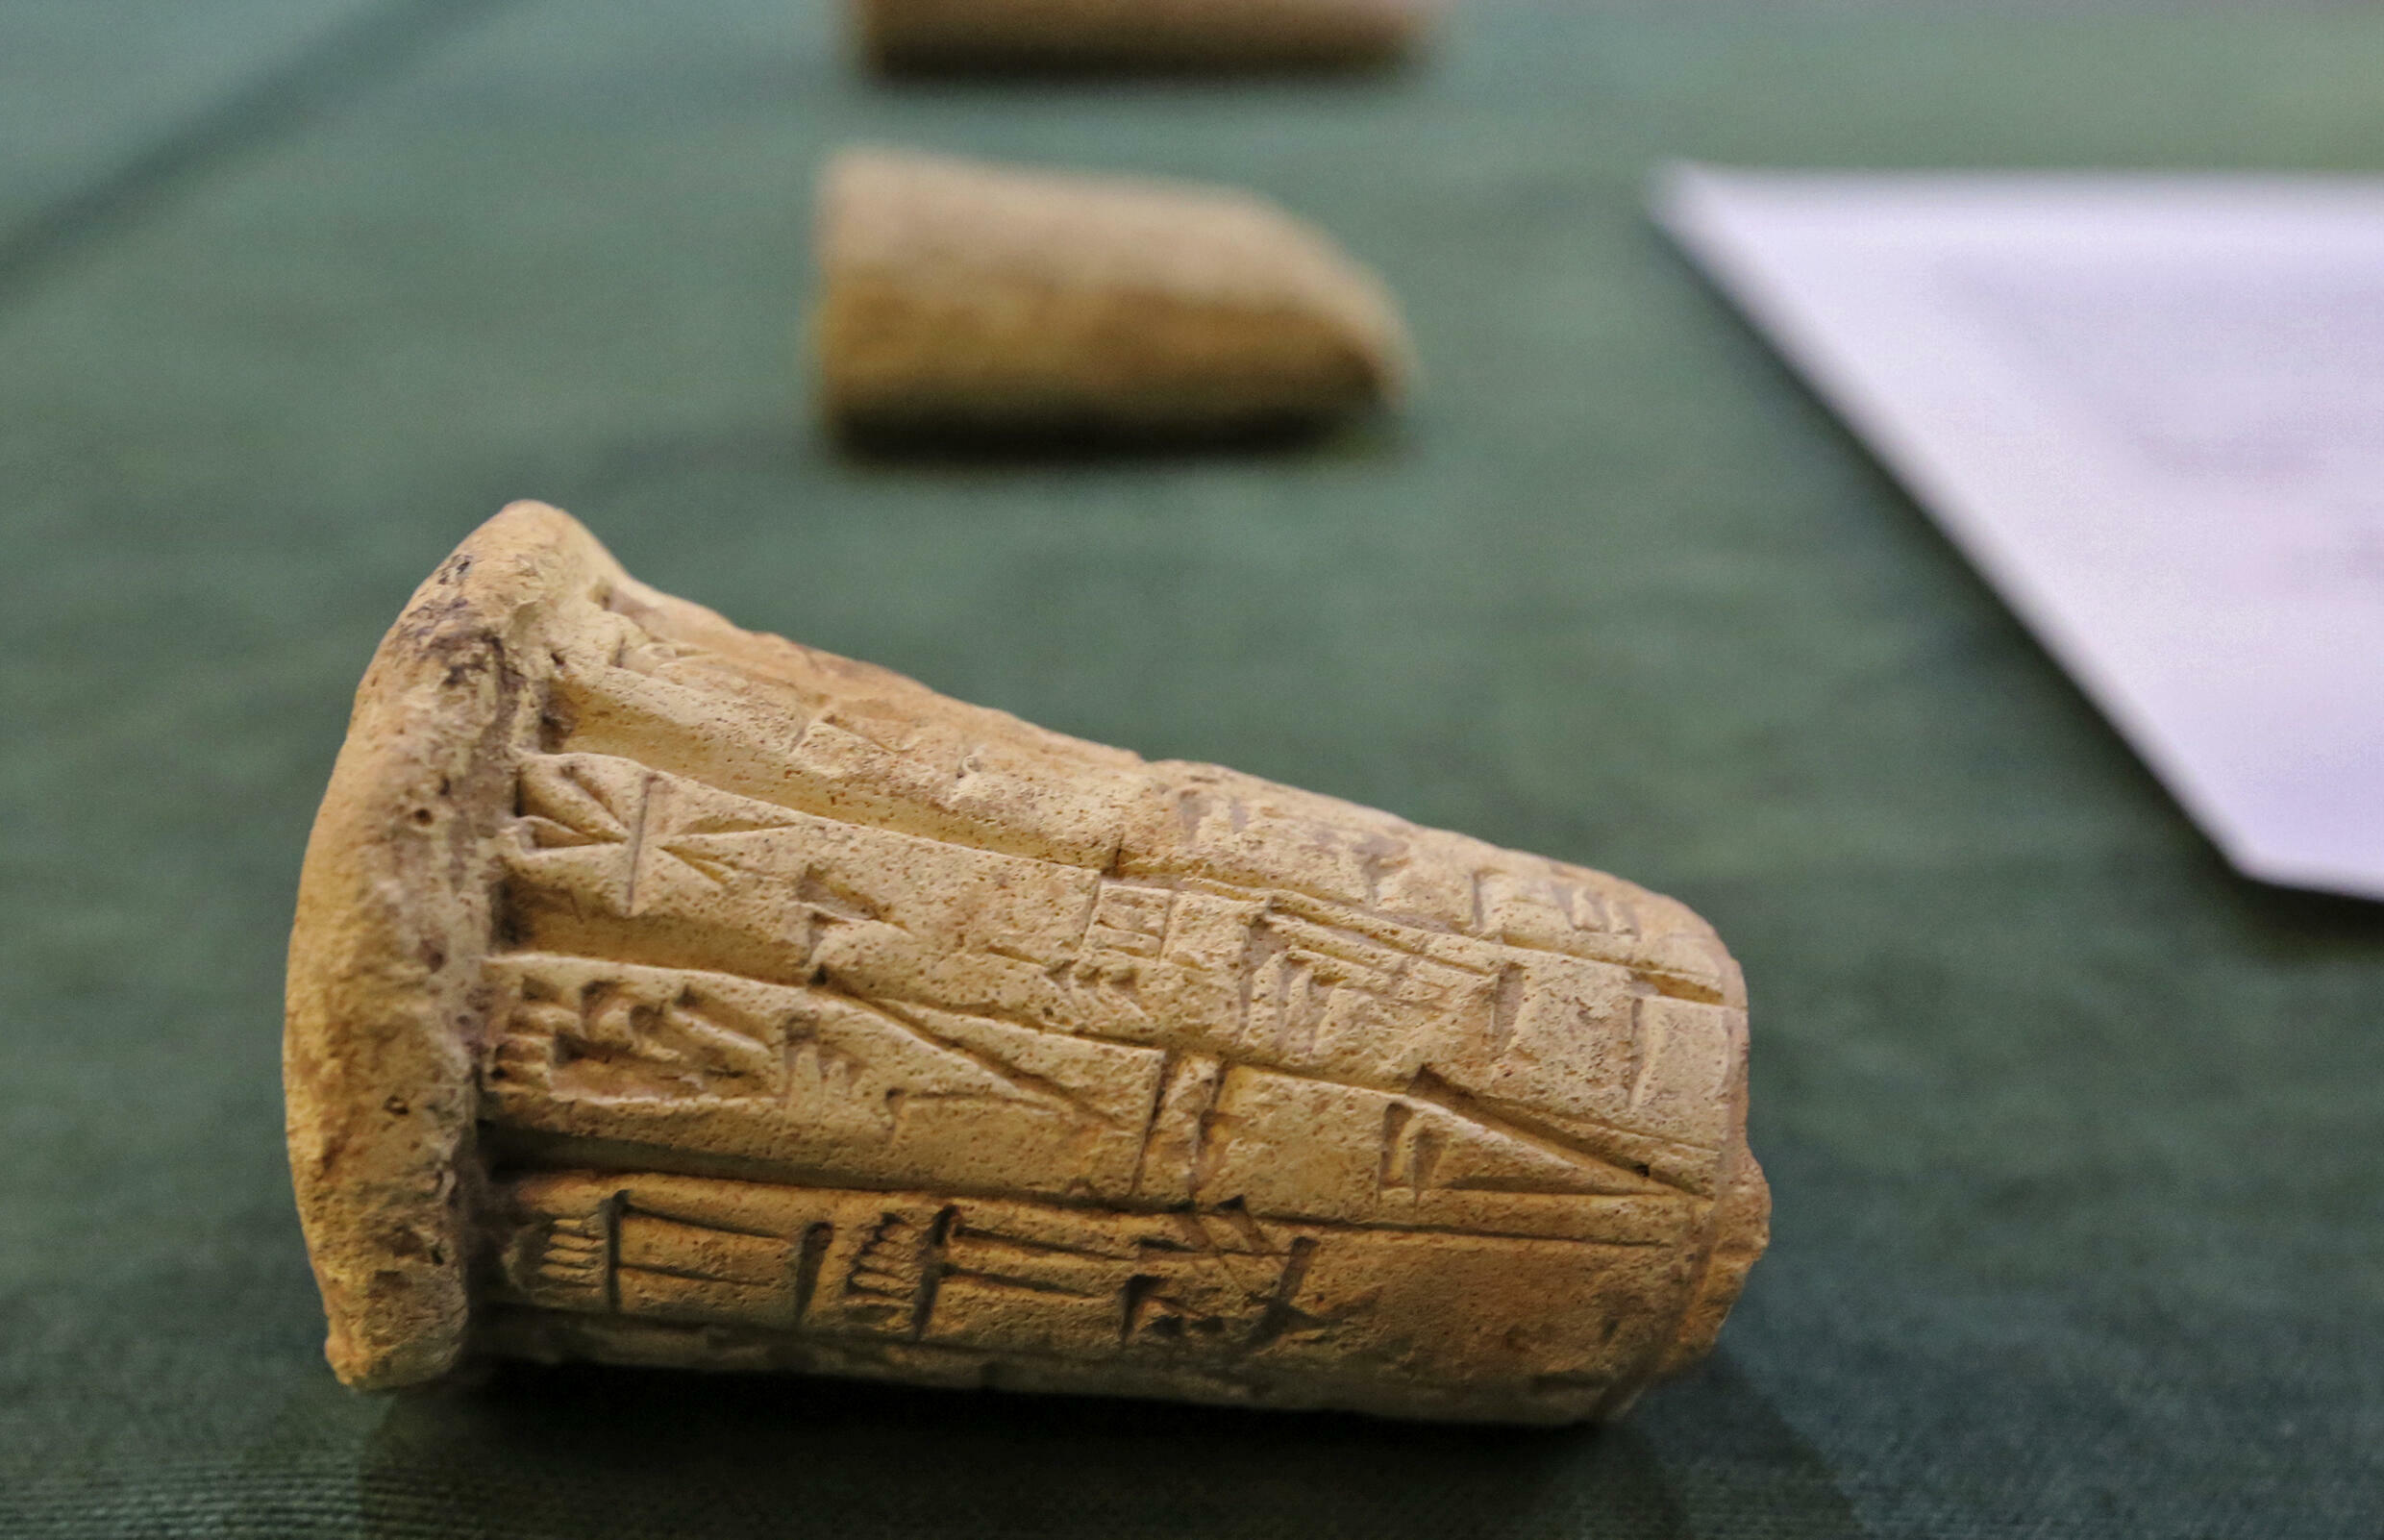 Mesopotamian clay cones were part of a treasure trove of looted antiques returned to Iraq by the United States earlier this month